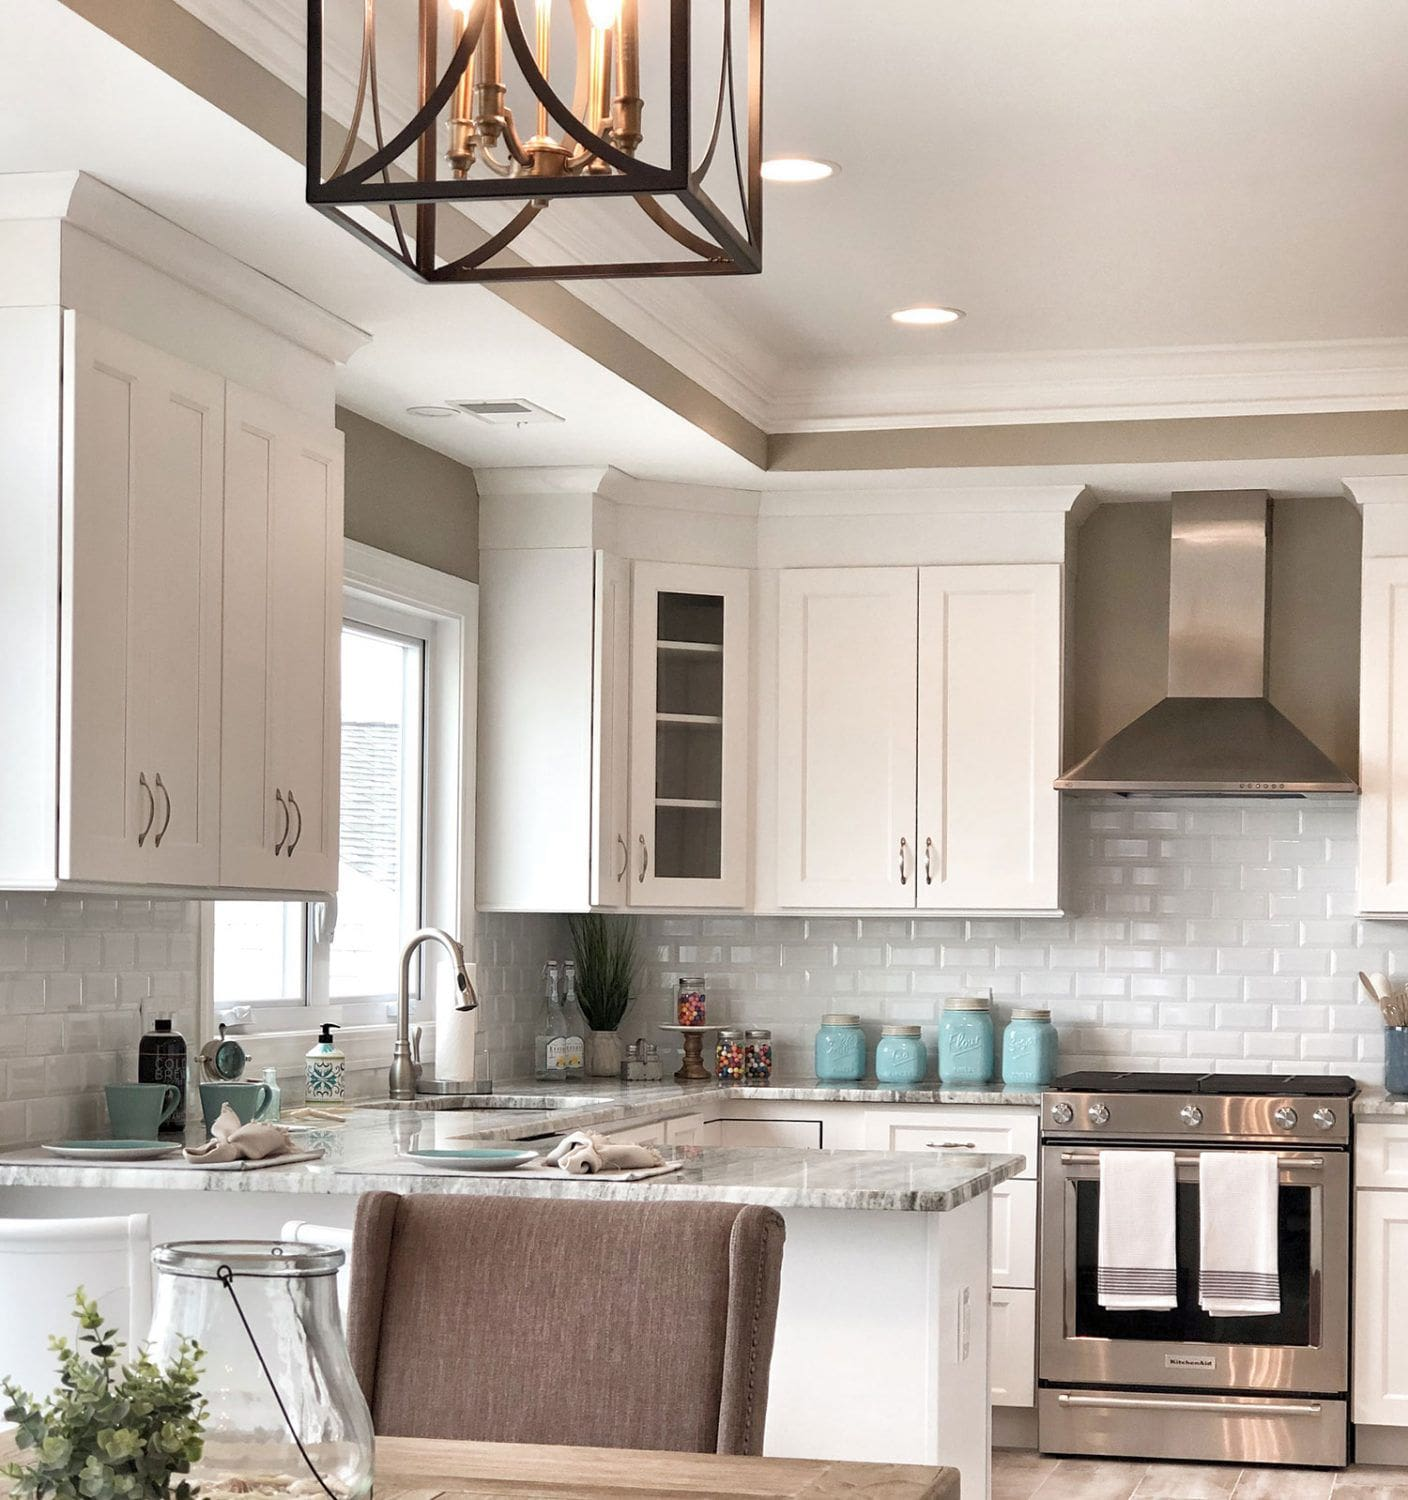 Lavallette New Jersey - Kitchen Interior Design 3